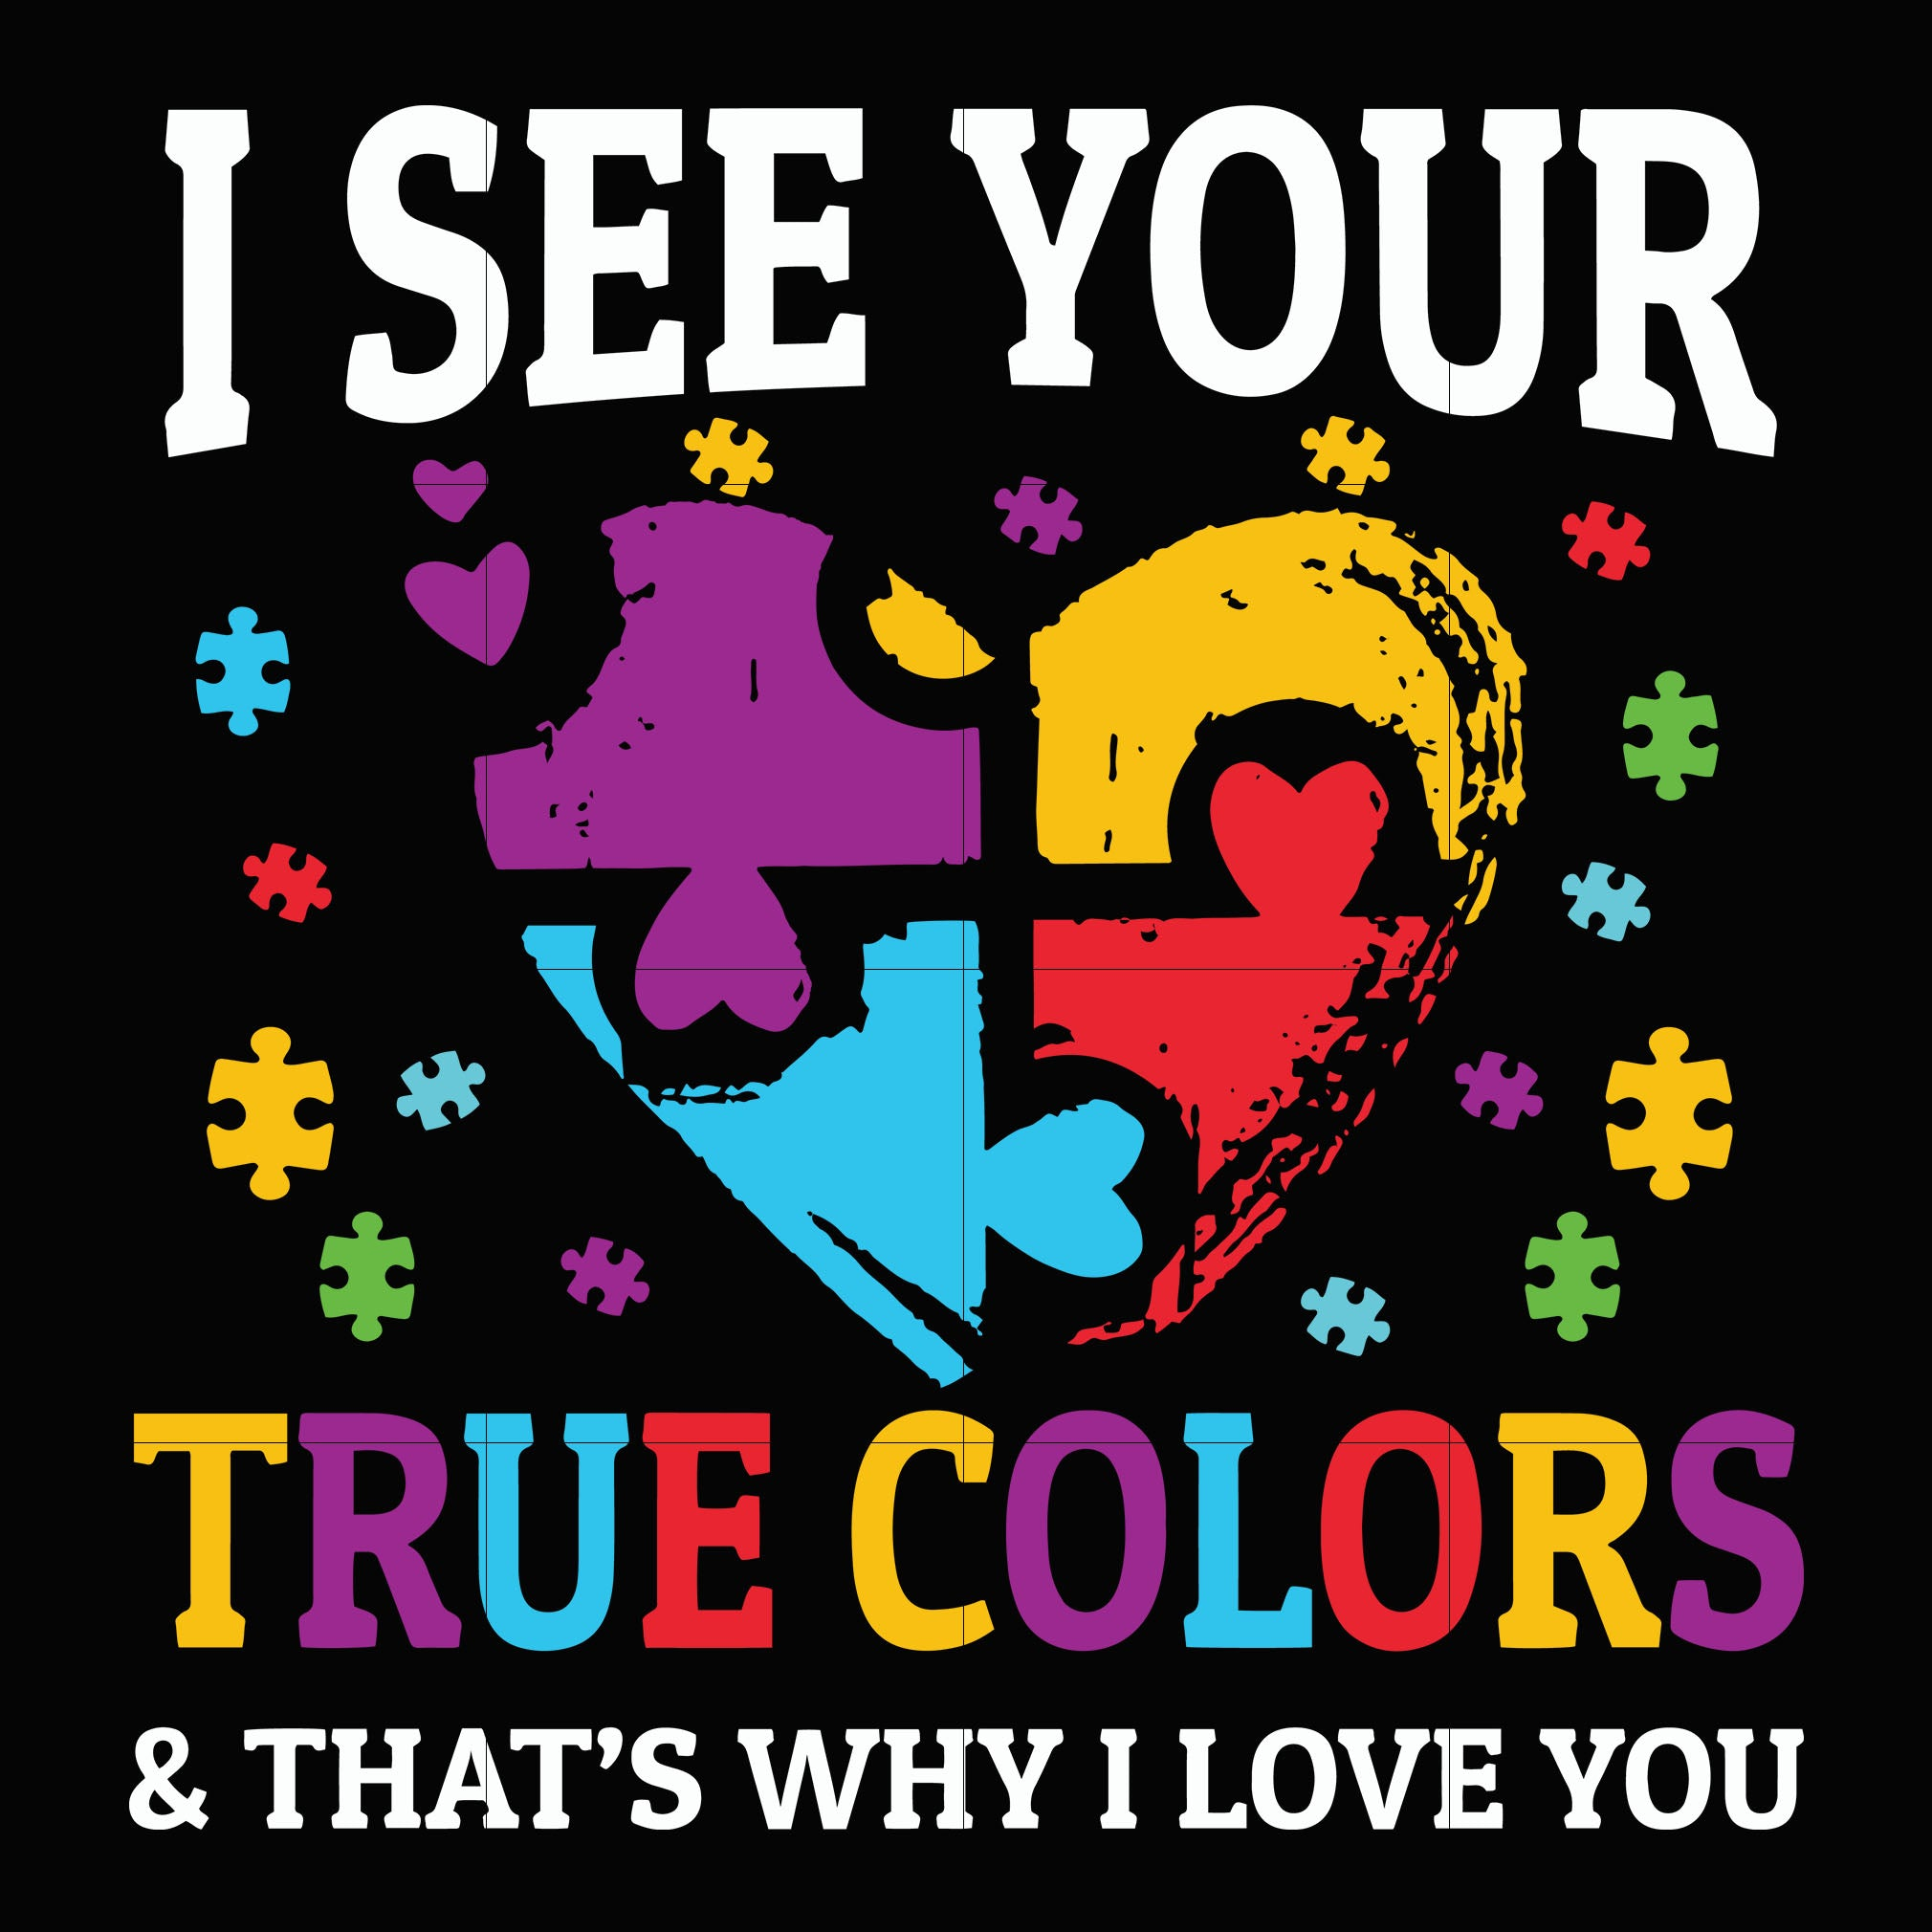 I see you true color that's why i love you svg, autism svg, autism awareness svg, dxf, eps, png digital file